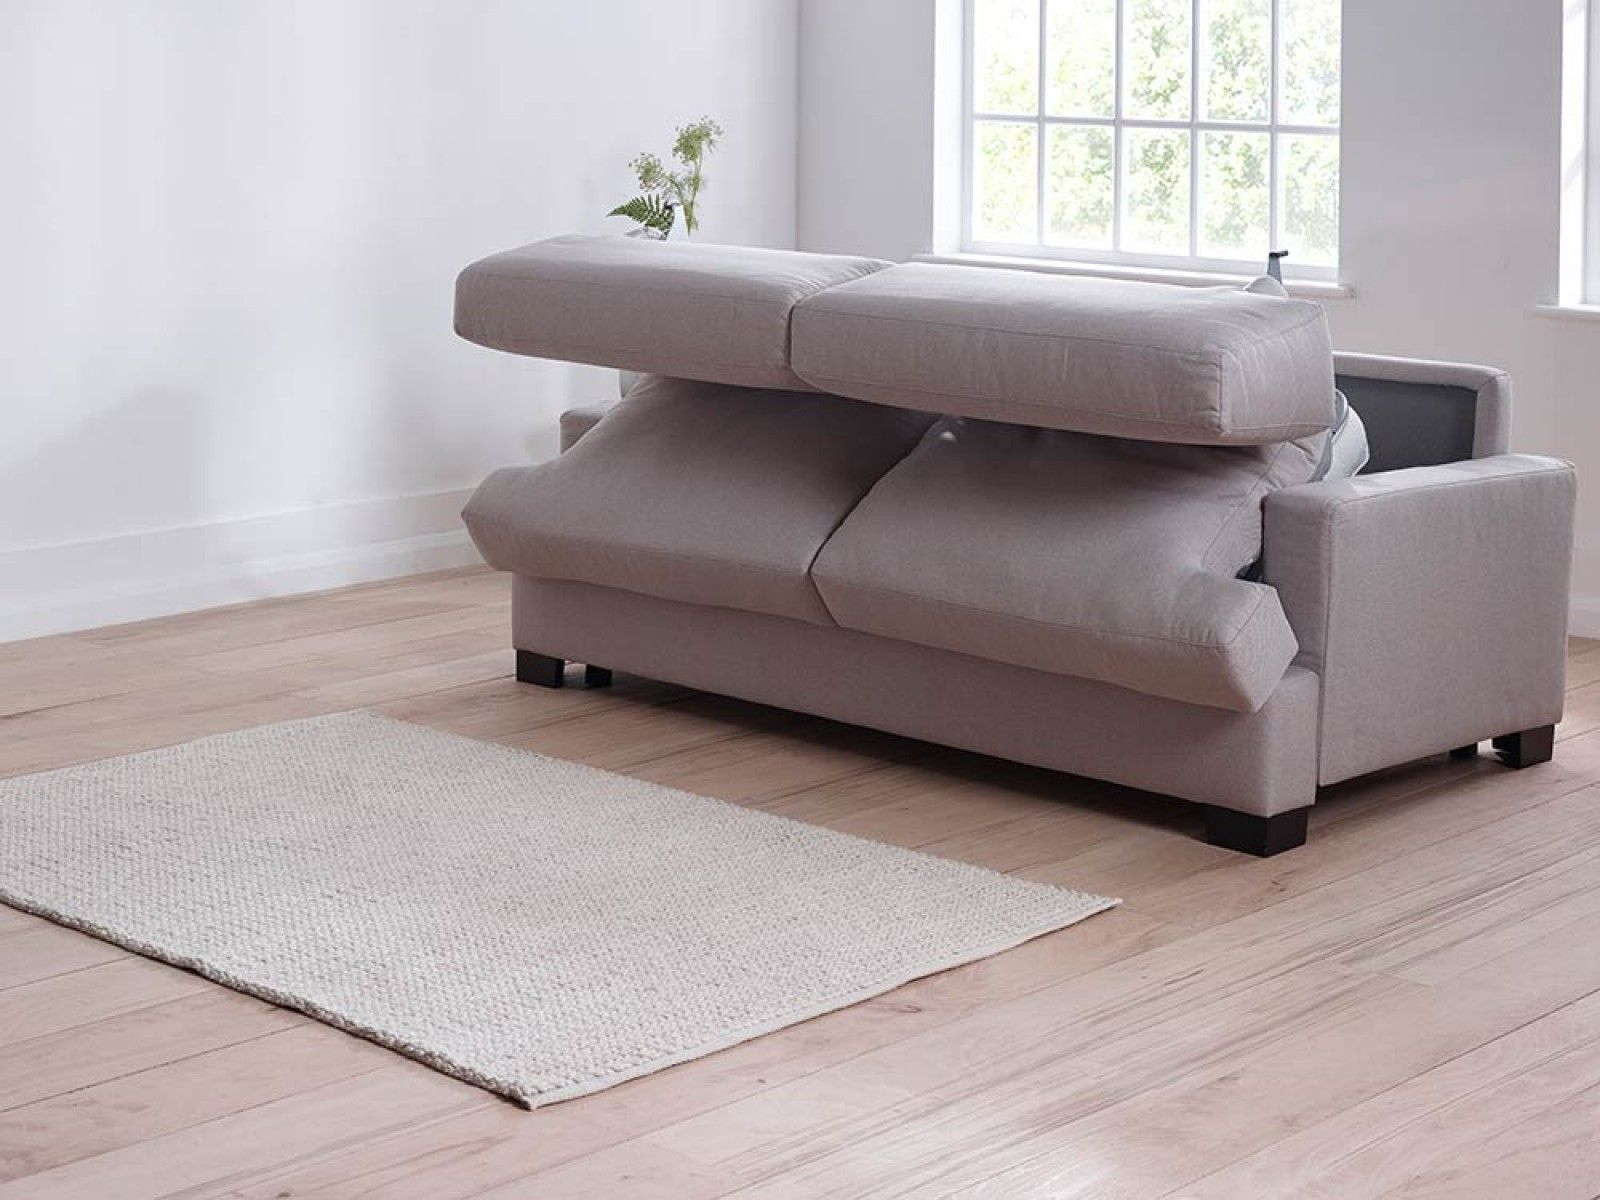 Daphne Sofa Bed Modern Single Movement Sofa Bed Simple And Easy